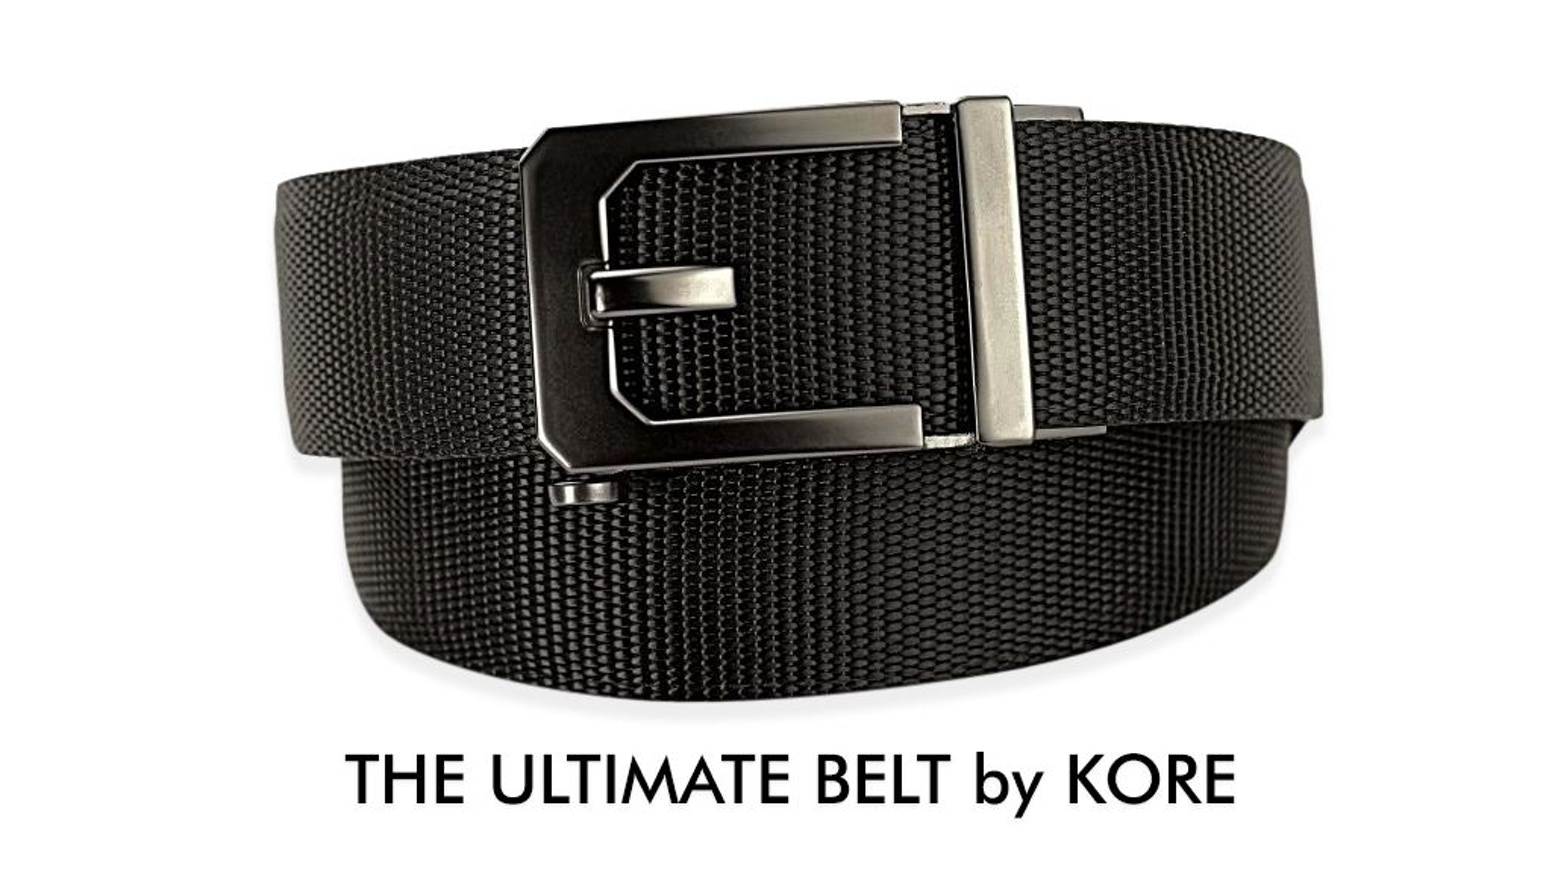 The Perfect-Fitting, Indestructible EDC Belt. See why this is the last belt you will ever need...